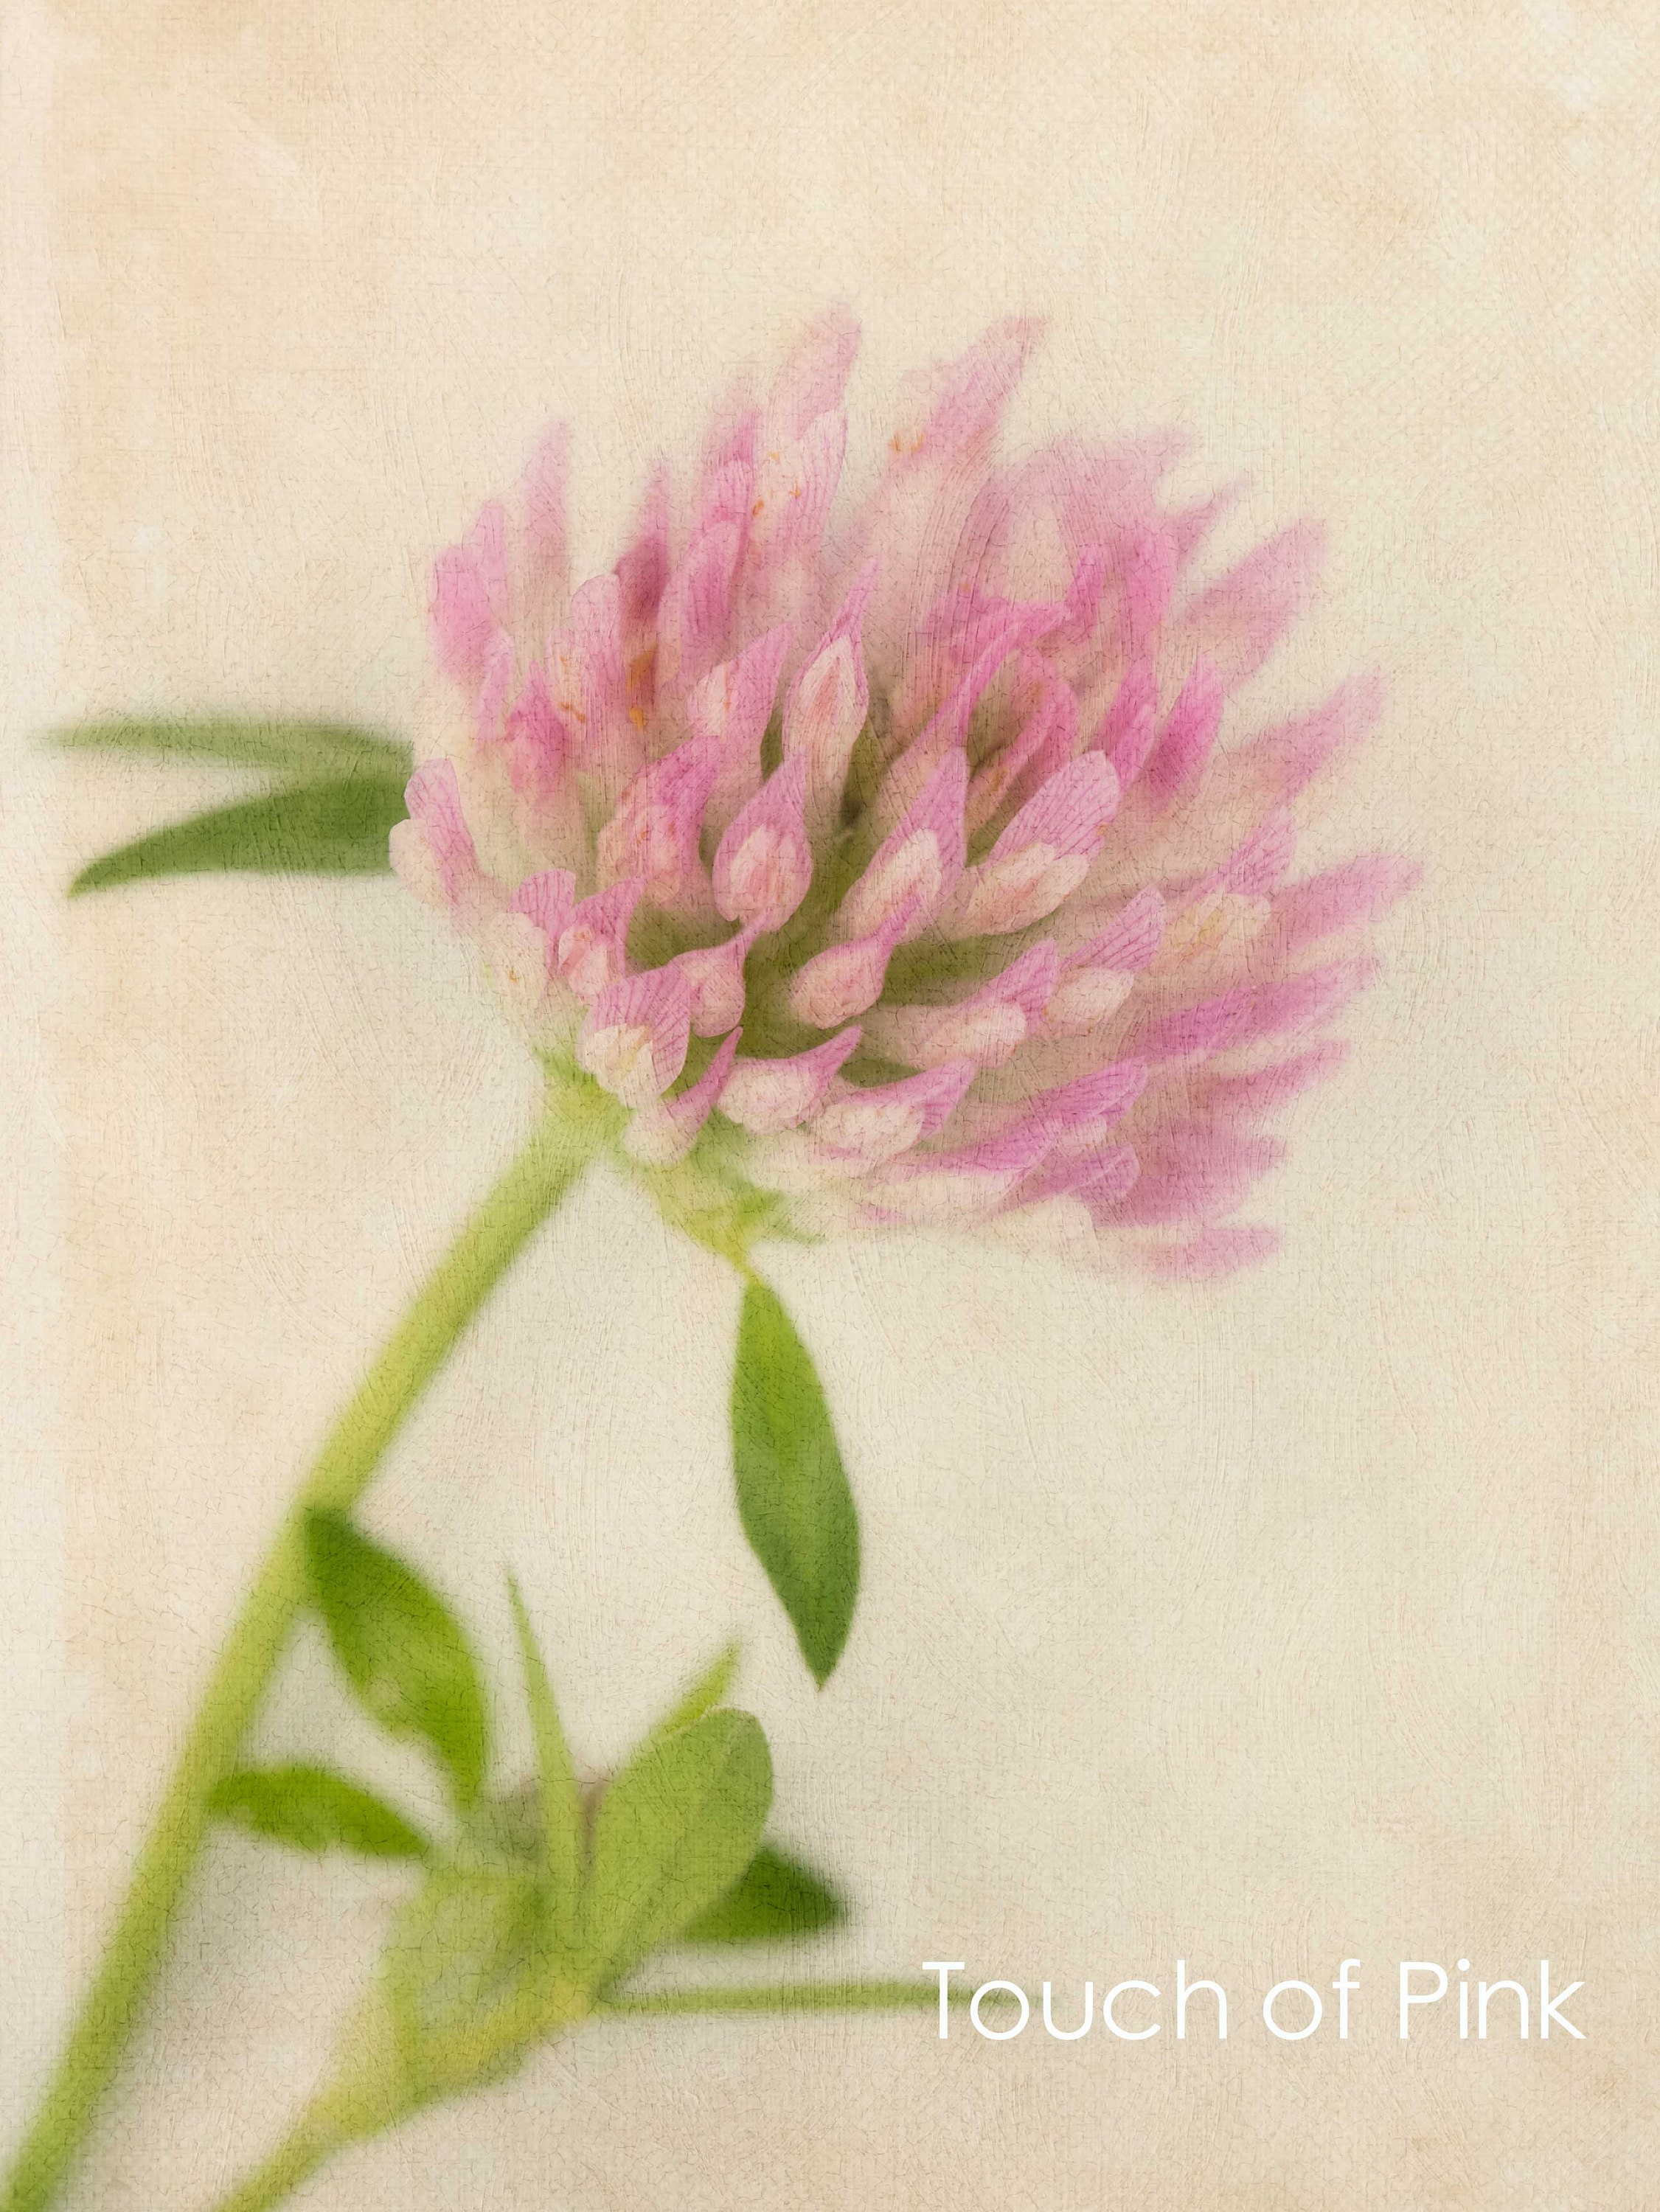 gardening gift- pink clover flower on cream background- fine art giclee floral prints for christmas gifts- available unframed or ready to hang in custom sizes and as canvas, art panel and box frame